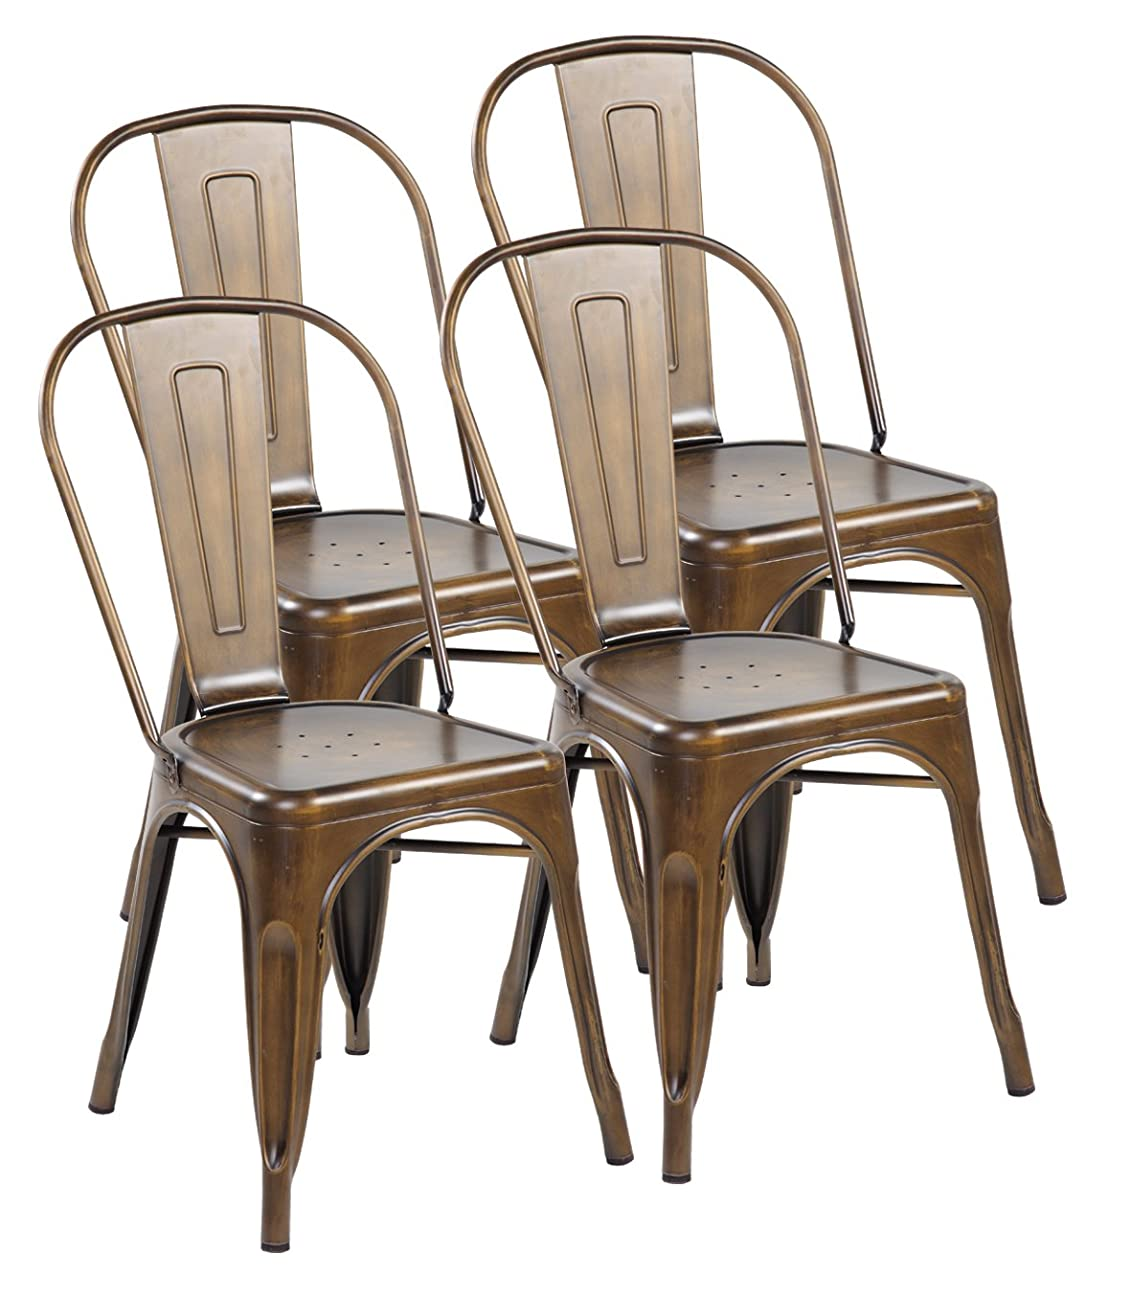 United Chair Tolix Style Metal Stackable Kitchen Dining Chairs with Back Set of 4 Antique Copper 3004-AC-4 0